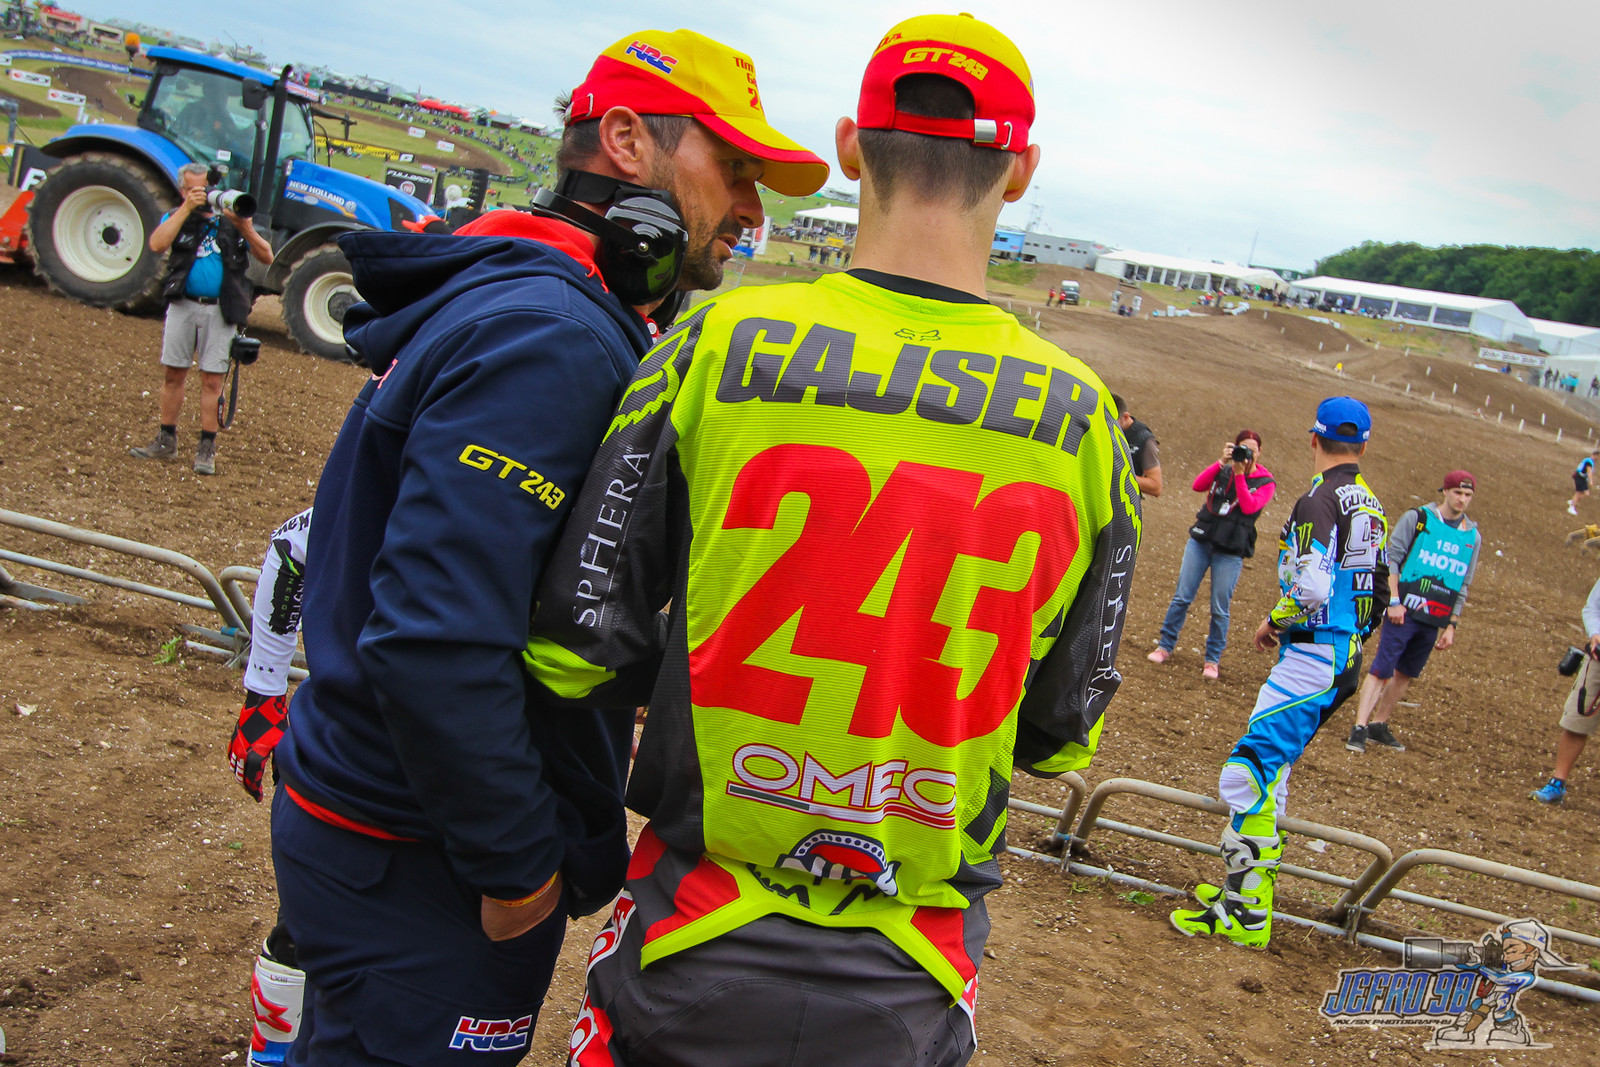 Tim Gajser - Photo Gallery: MXGP of Great Britain - Motocross Pictures - Vital MX